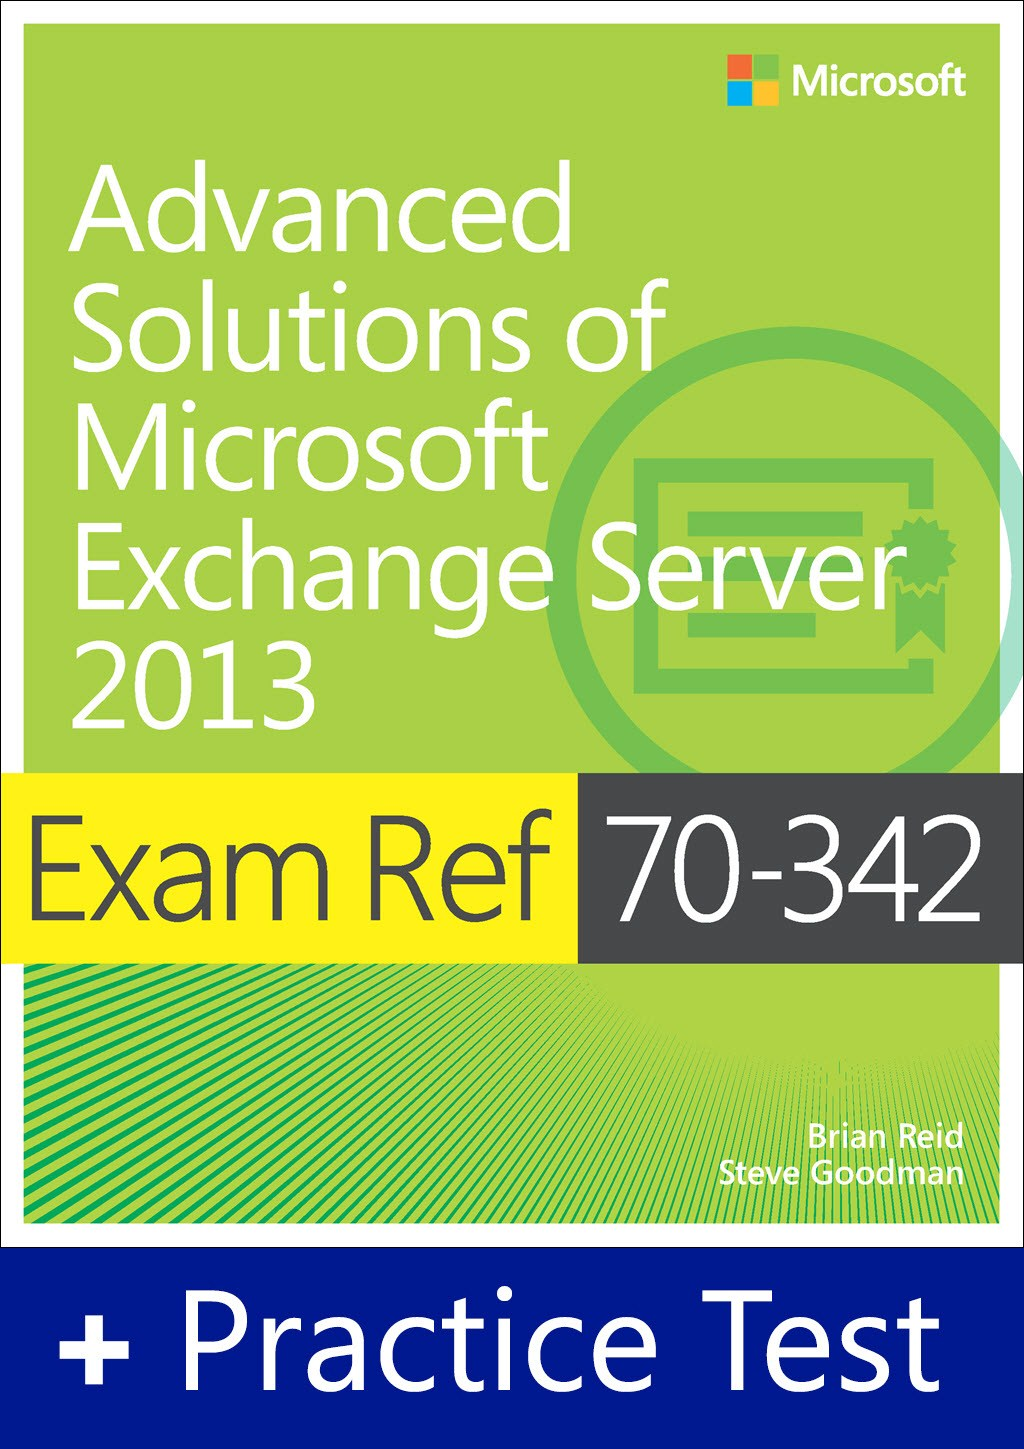 Exam Ref 70-342 Advanced Solutions of Microsoft Exchange Server 2013 with Practice Test